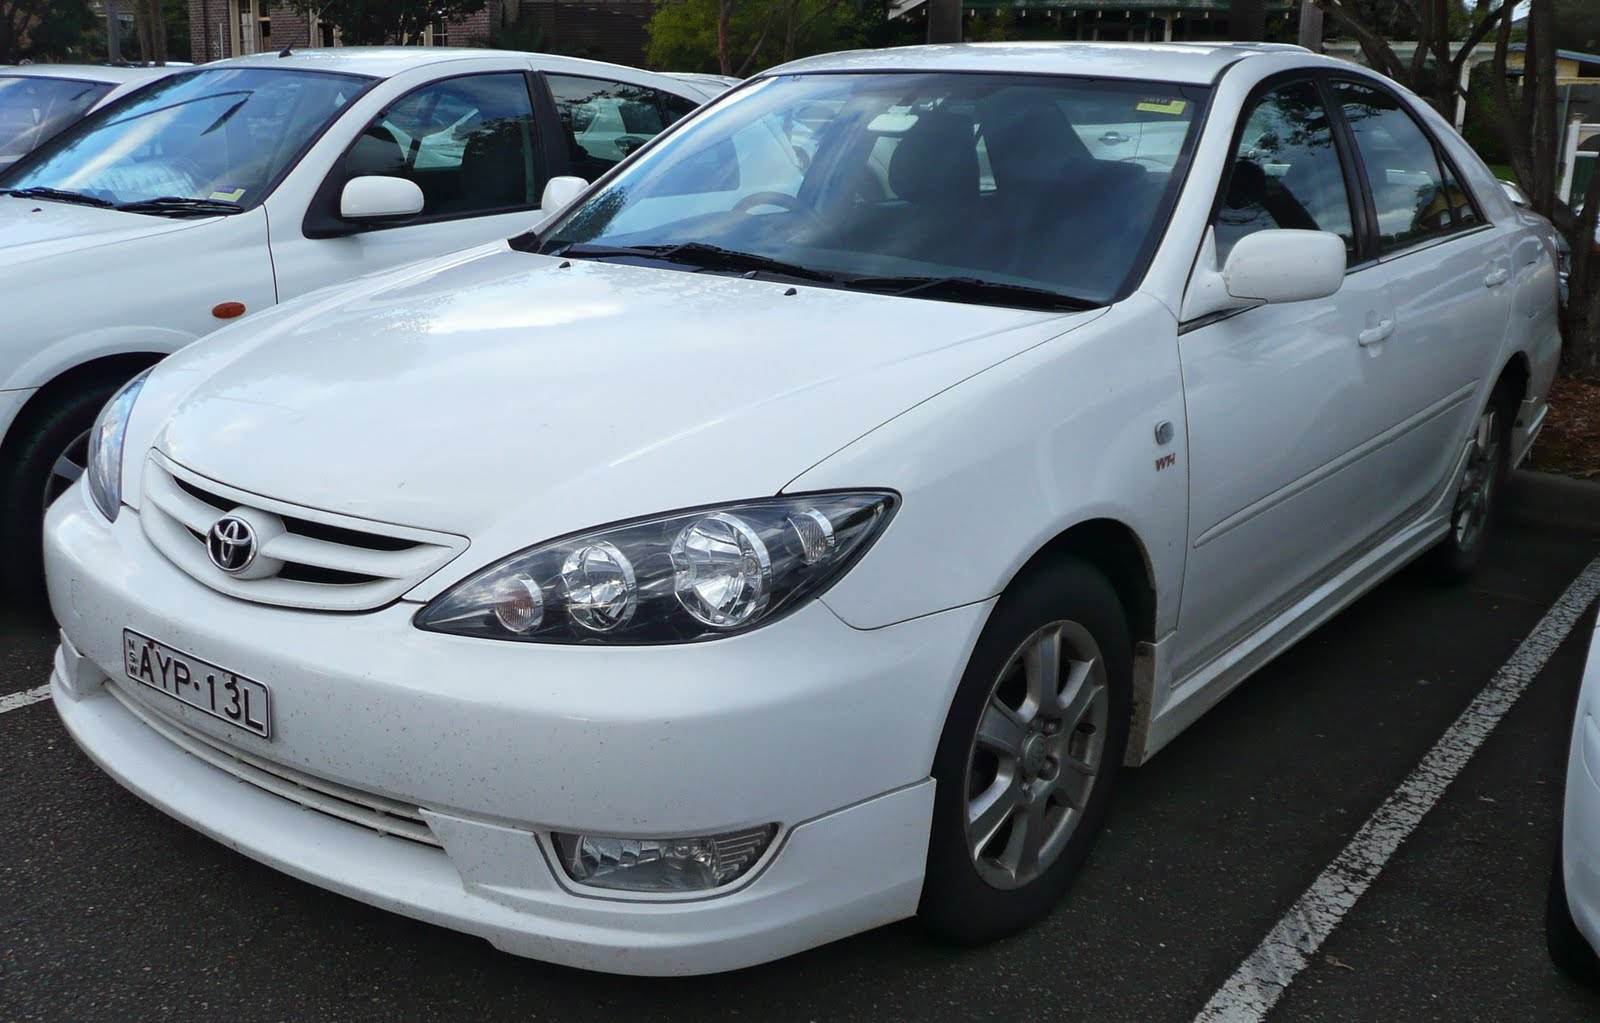 toyota camry 2005 pocket reference guide download